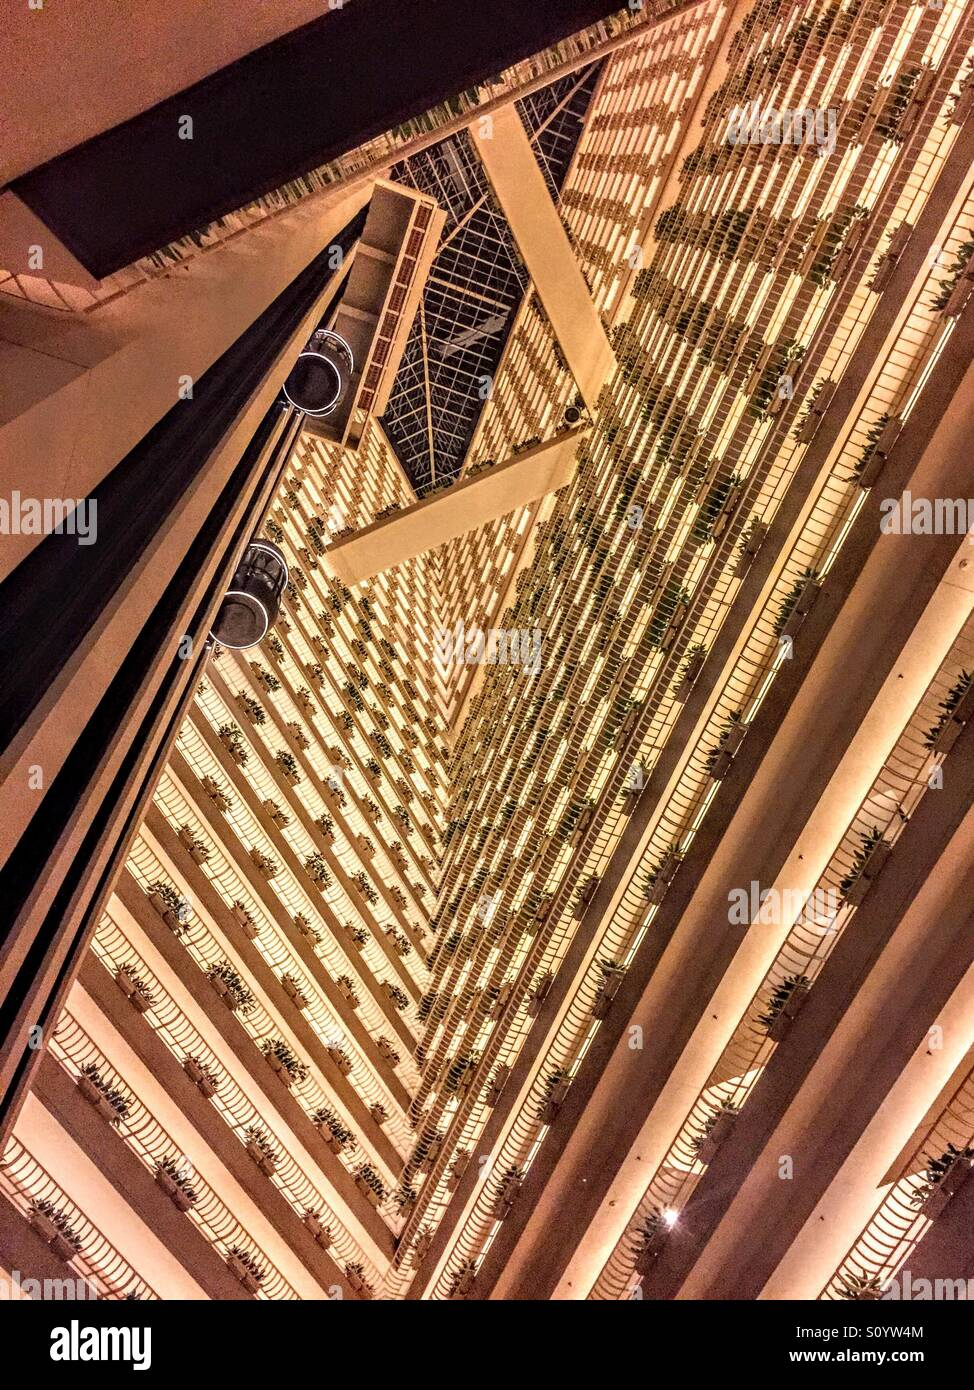 Hotel void in Singapore - Stock Image